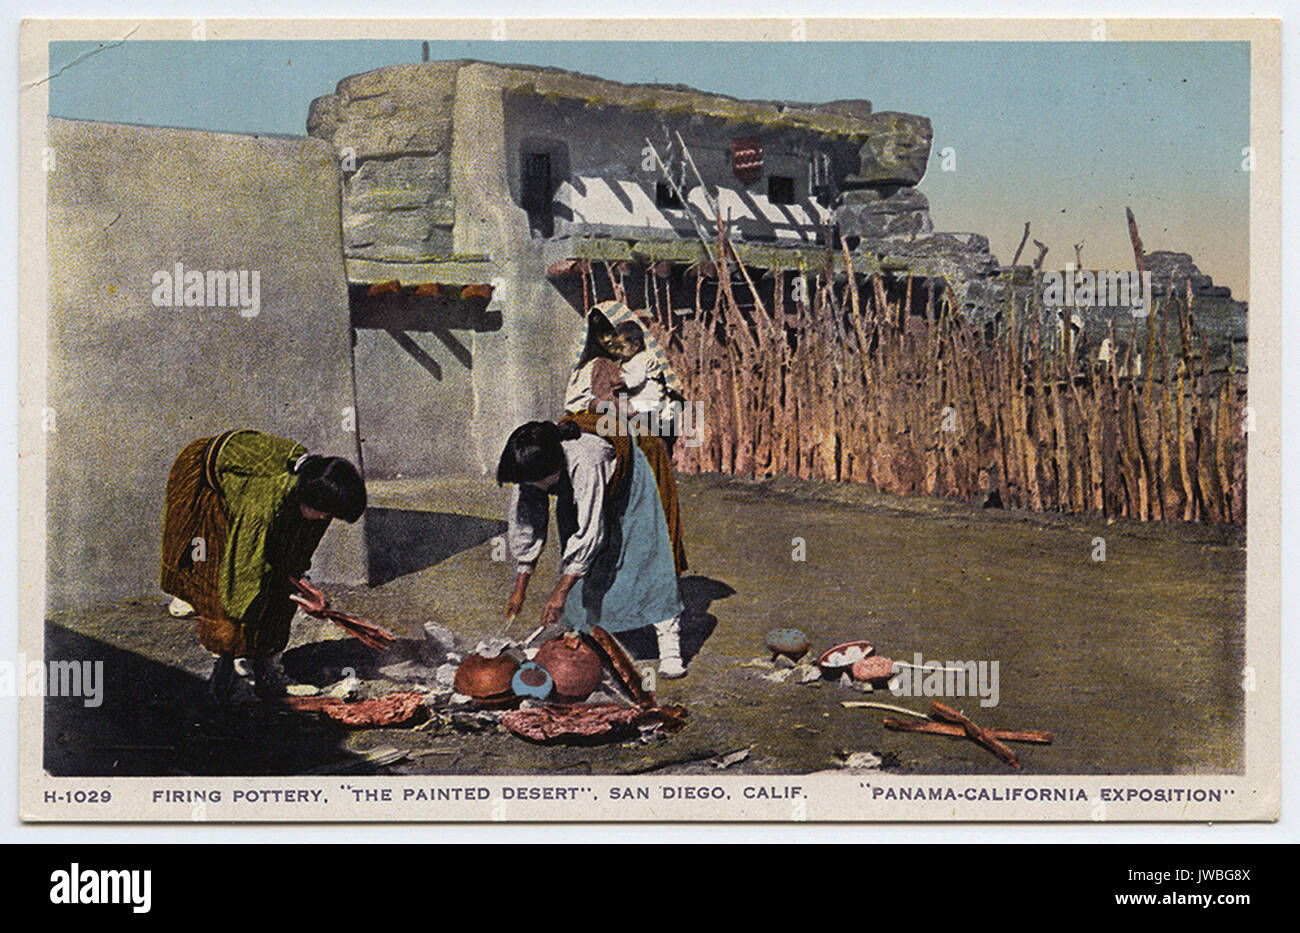 Firing pottery, ''The Painted Desert'', San Diego, Calif. - American Indian Postcards - Stock Image